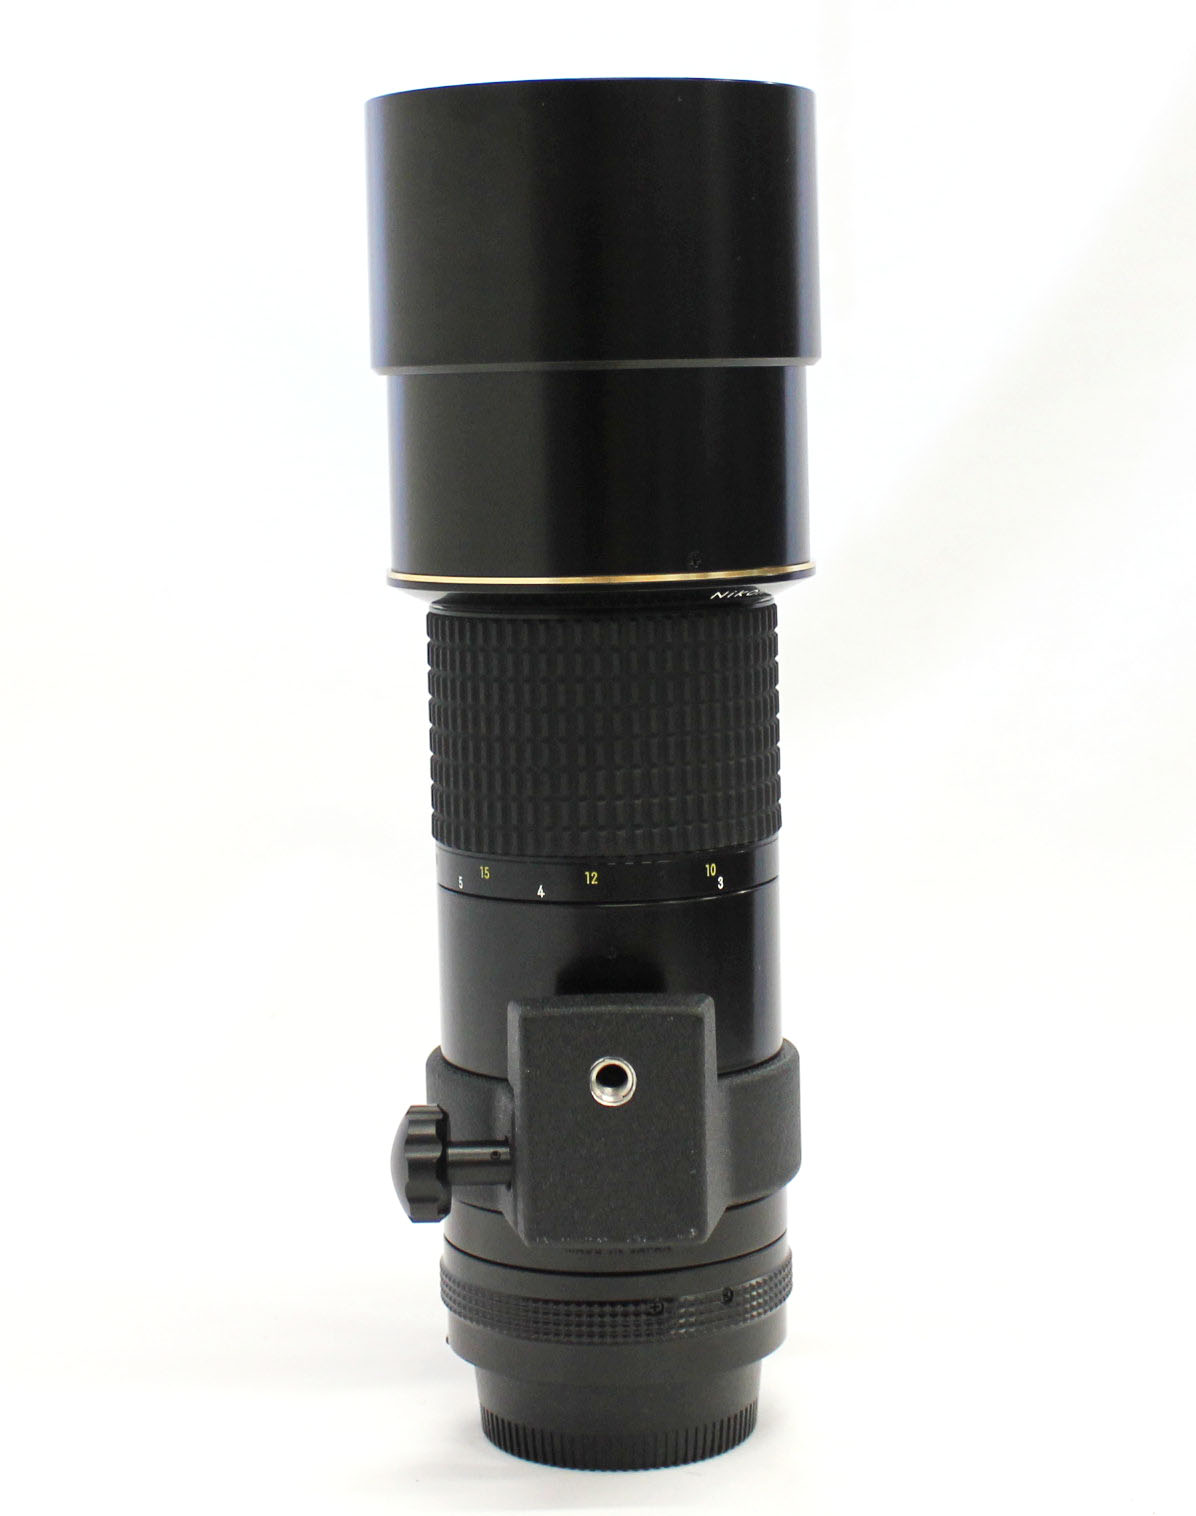 Nikon Ai Nikkor ED IF 300mm F/4.5 MF Telephoto Lens F Mount from Japan Photo 7